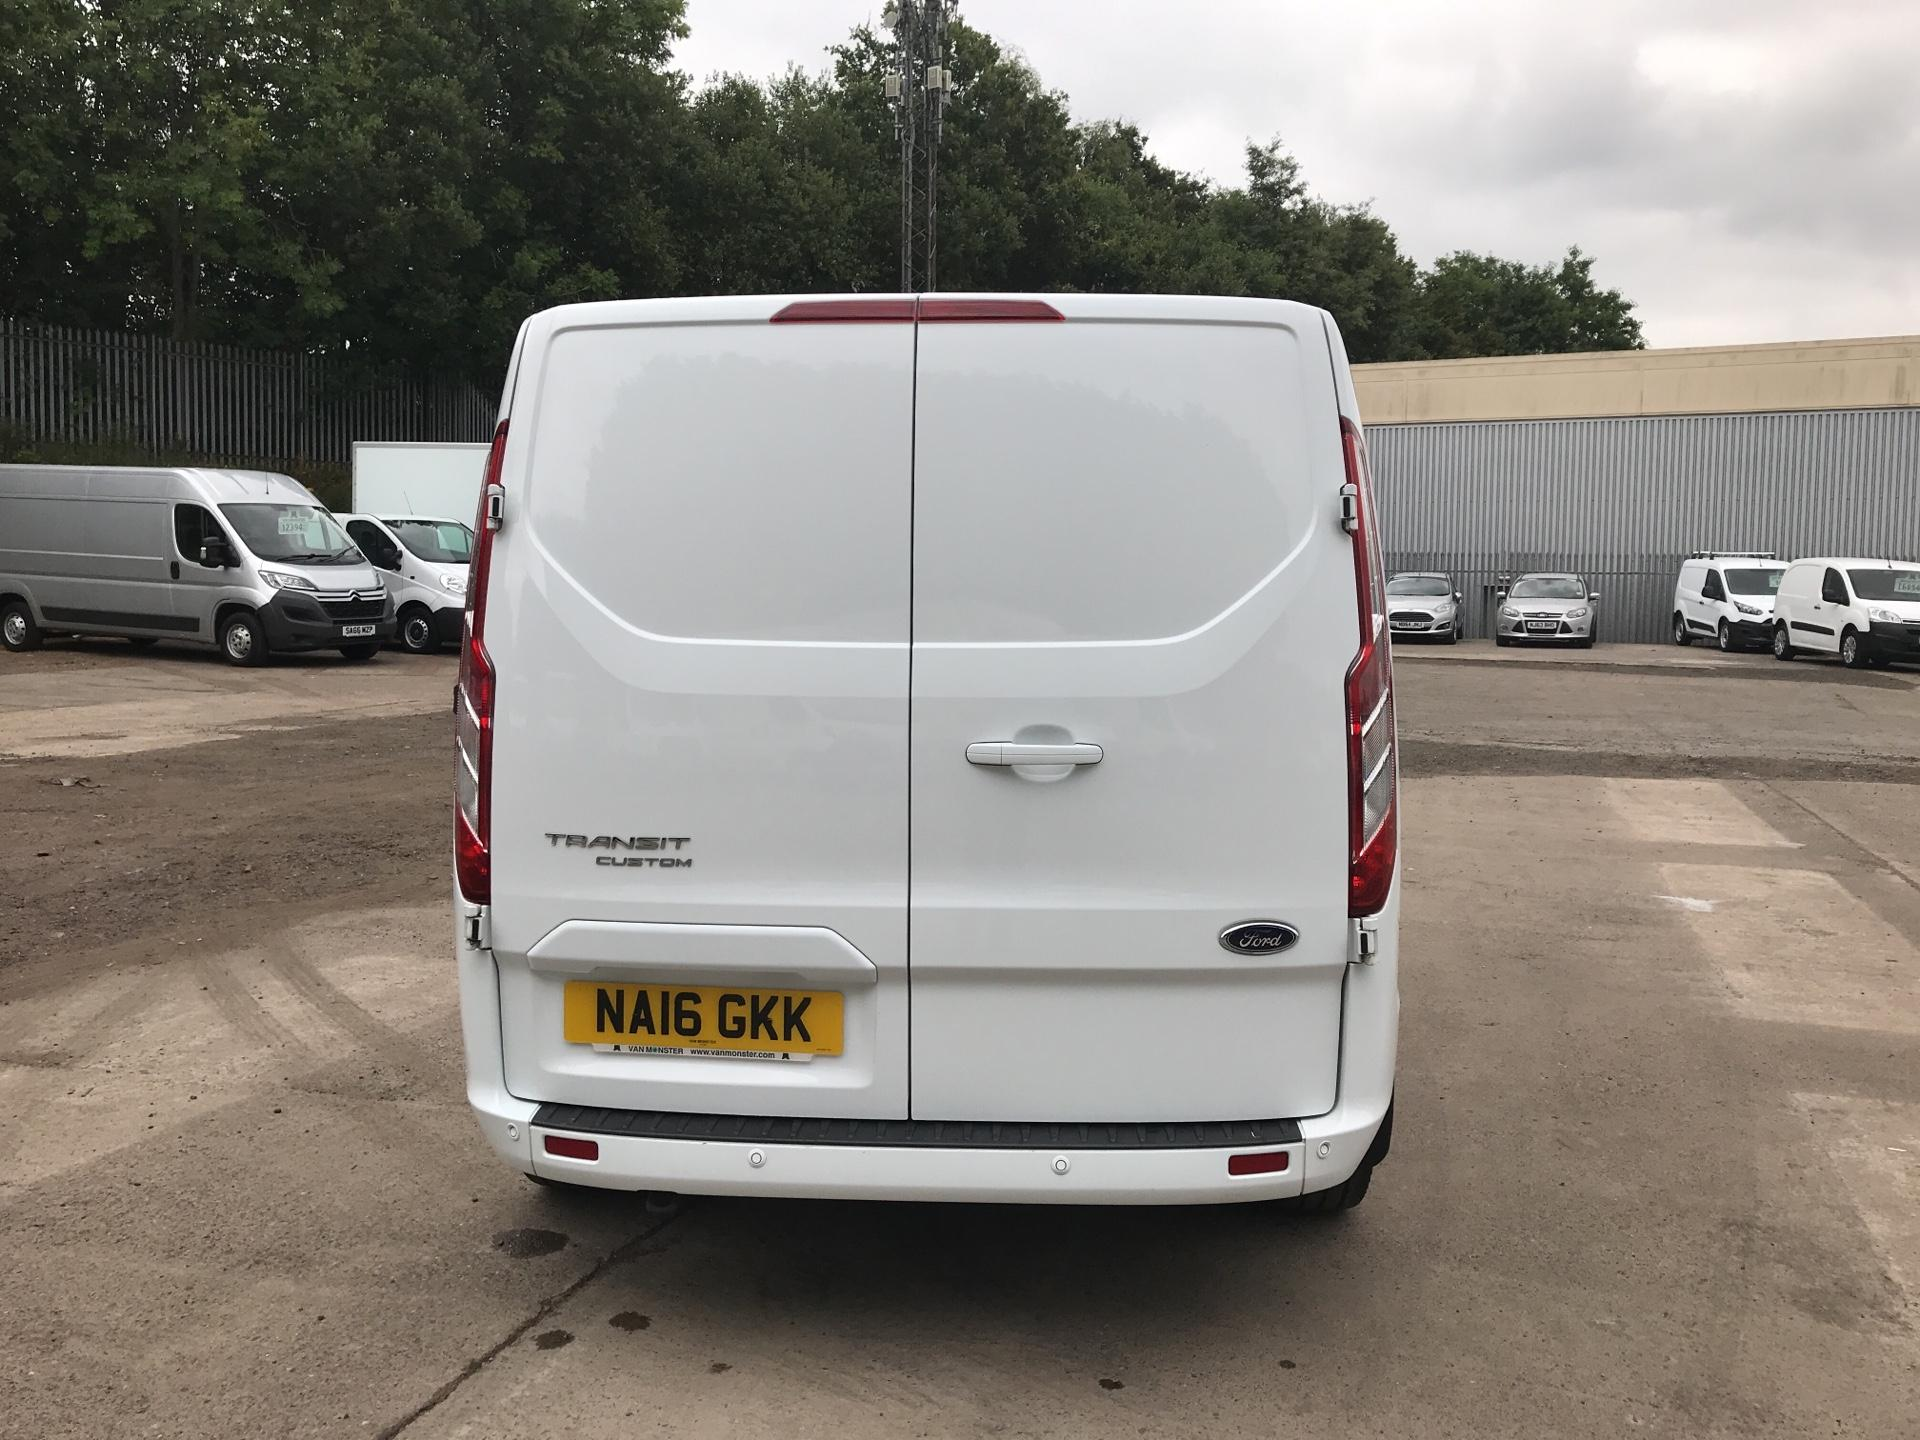 2016 Ford Transit Custom 270 L1 DIESEL FWD 2.2  TDCI 125PS LOW ROOF LIMITED VAN EURO 5 (NA16GKK) Image 4